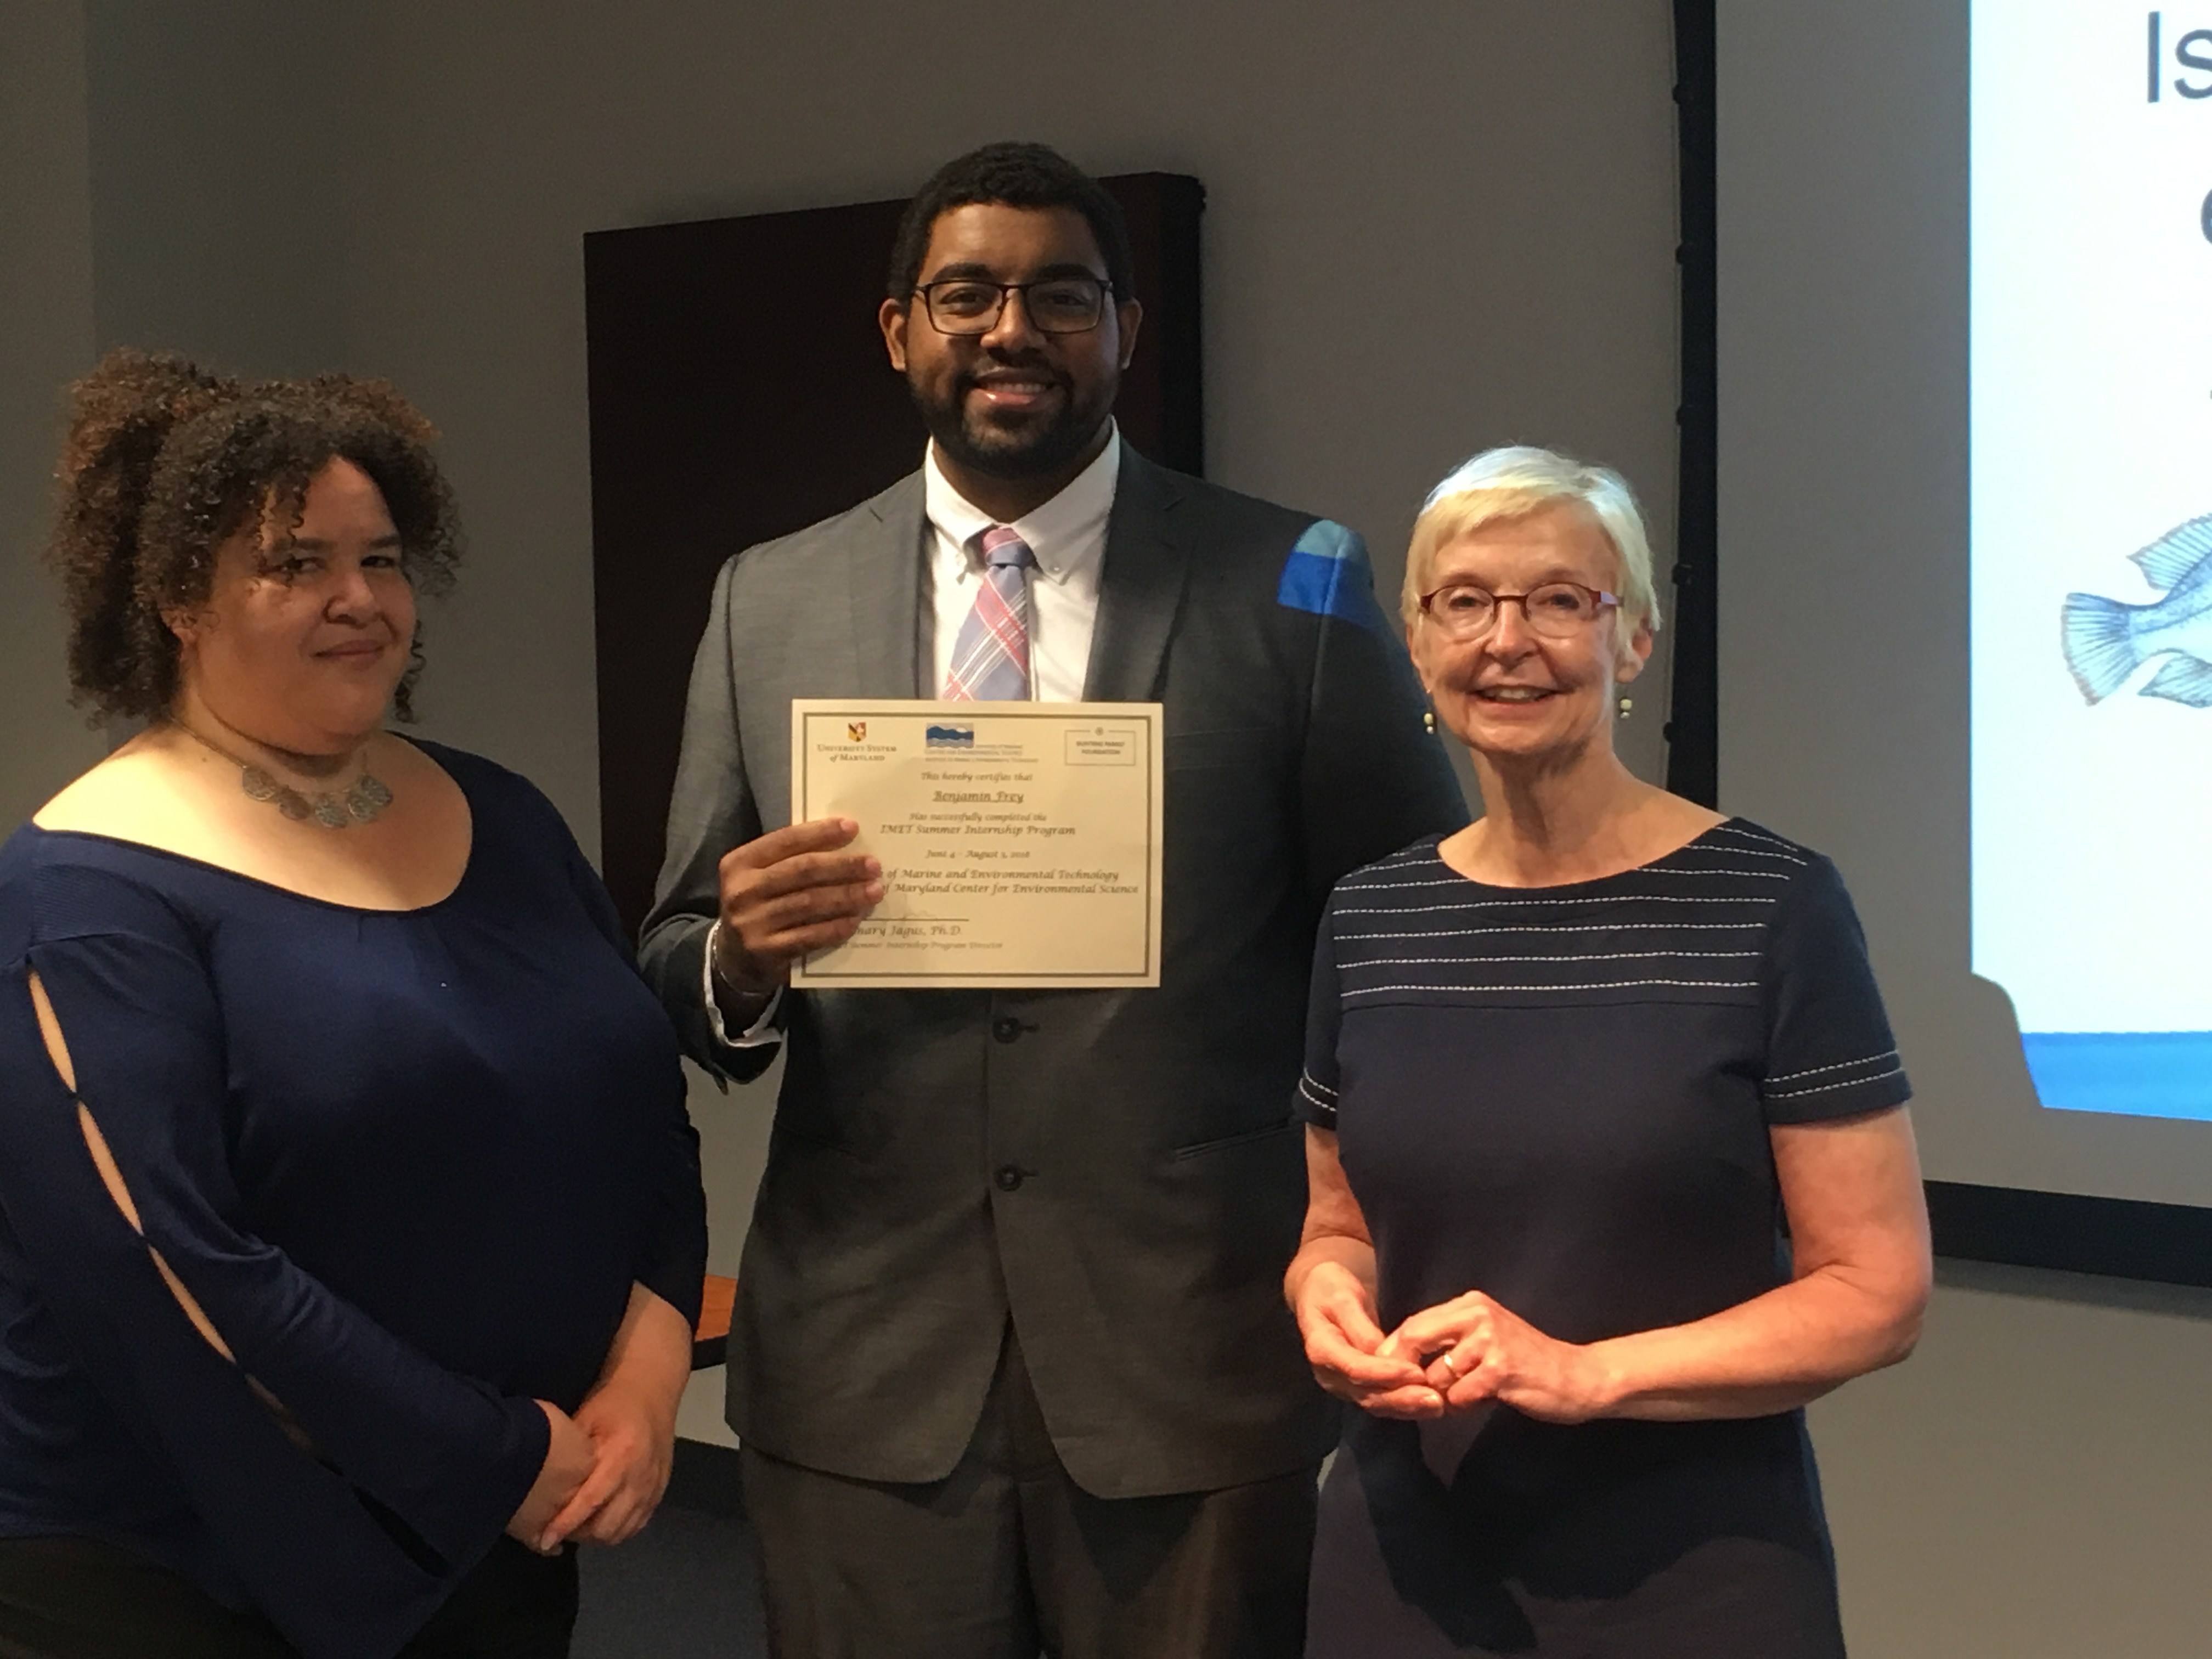 Ben Frey with Drs. Rose Jagus and Kate Gillespie